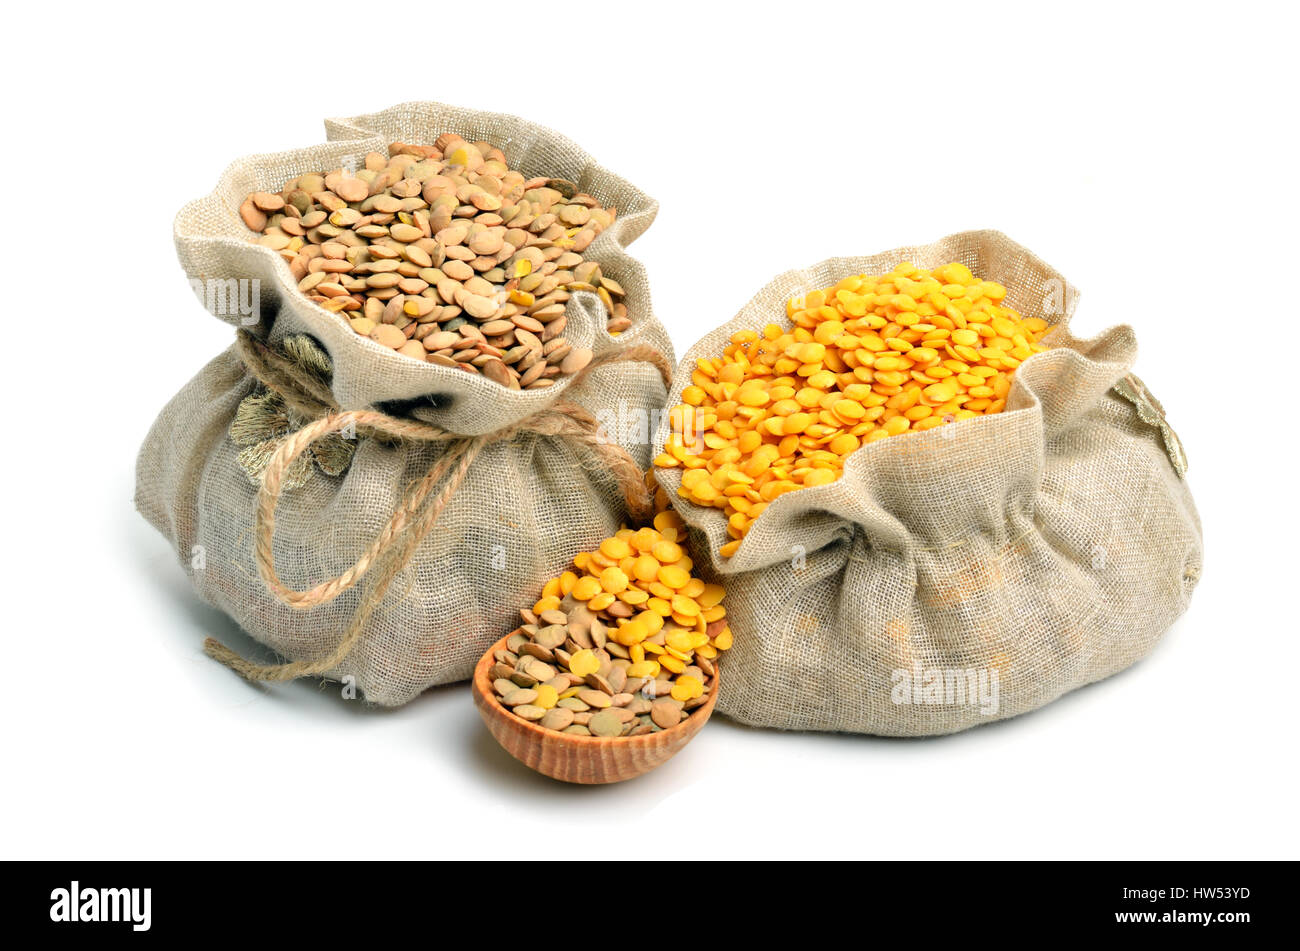 green and yellow lentils in the sacks and spoon wooden isolated on white background - Stock Image